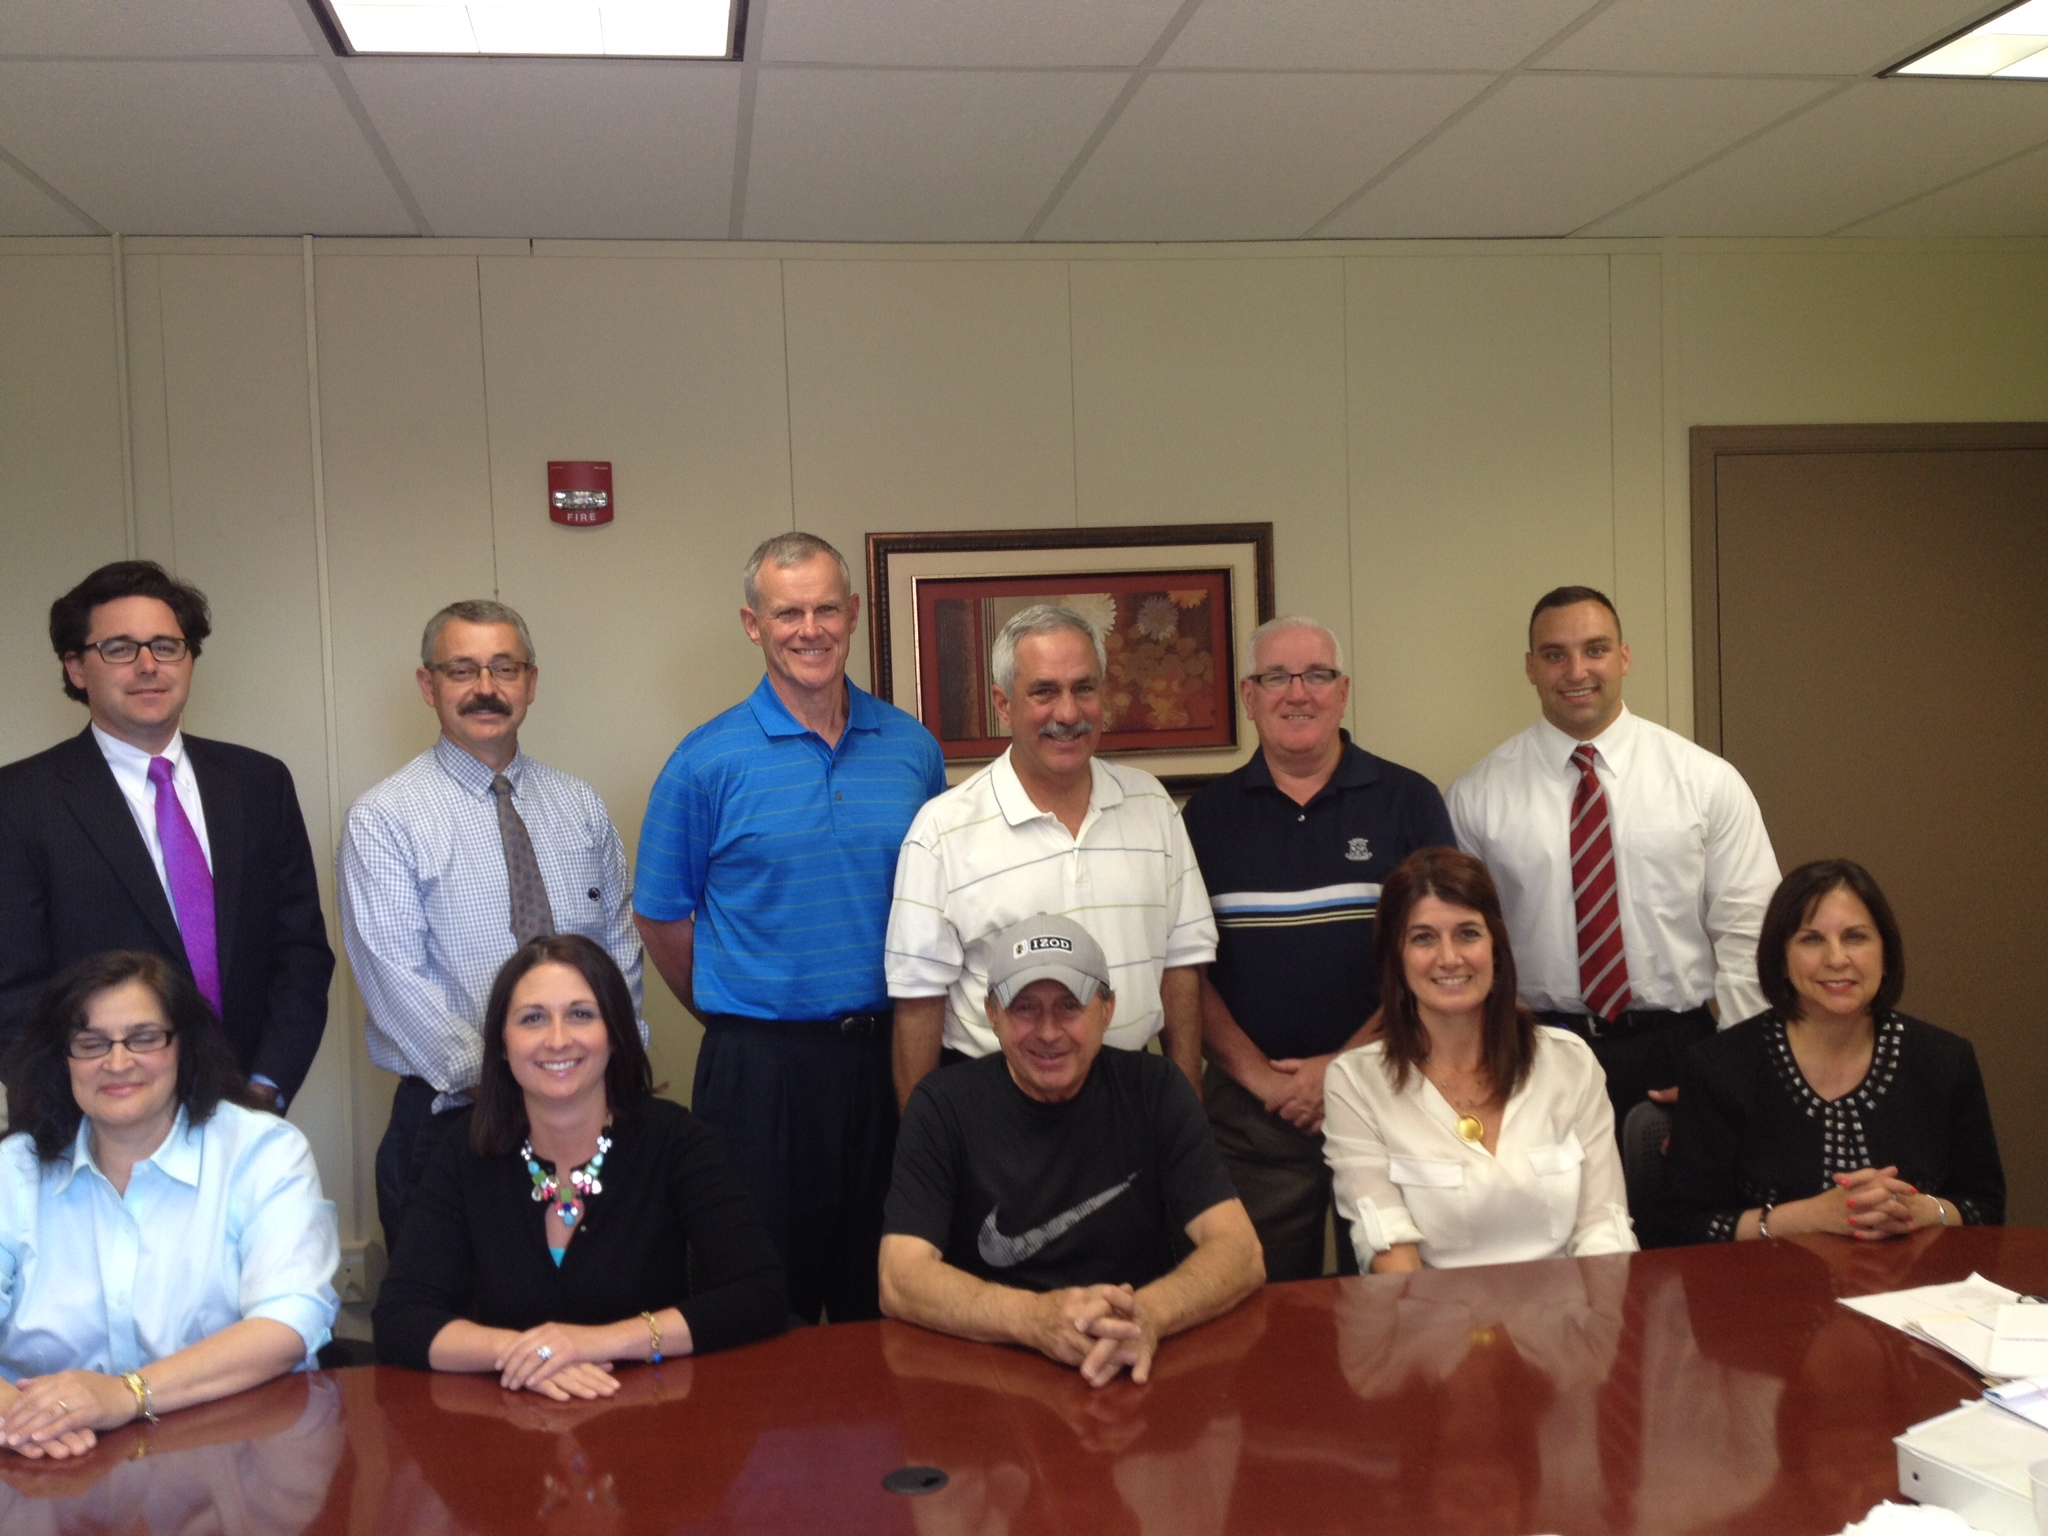 Tony Pero Memorial Golf Tournament Committee:   Seated (L to R): Gloria Pero, Cindy Iacavazzi, Jim Brozetti, Joyce Mitchell and Mary Rose Giacometti.   Standing (L to R):   Mike Cummings Jr.,  Joe Woelkers, Kevin McLaughlin, Charlie Cascio, Bill McDonnell and Anthony Pero, Jr.